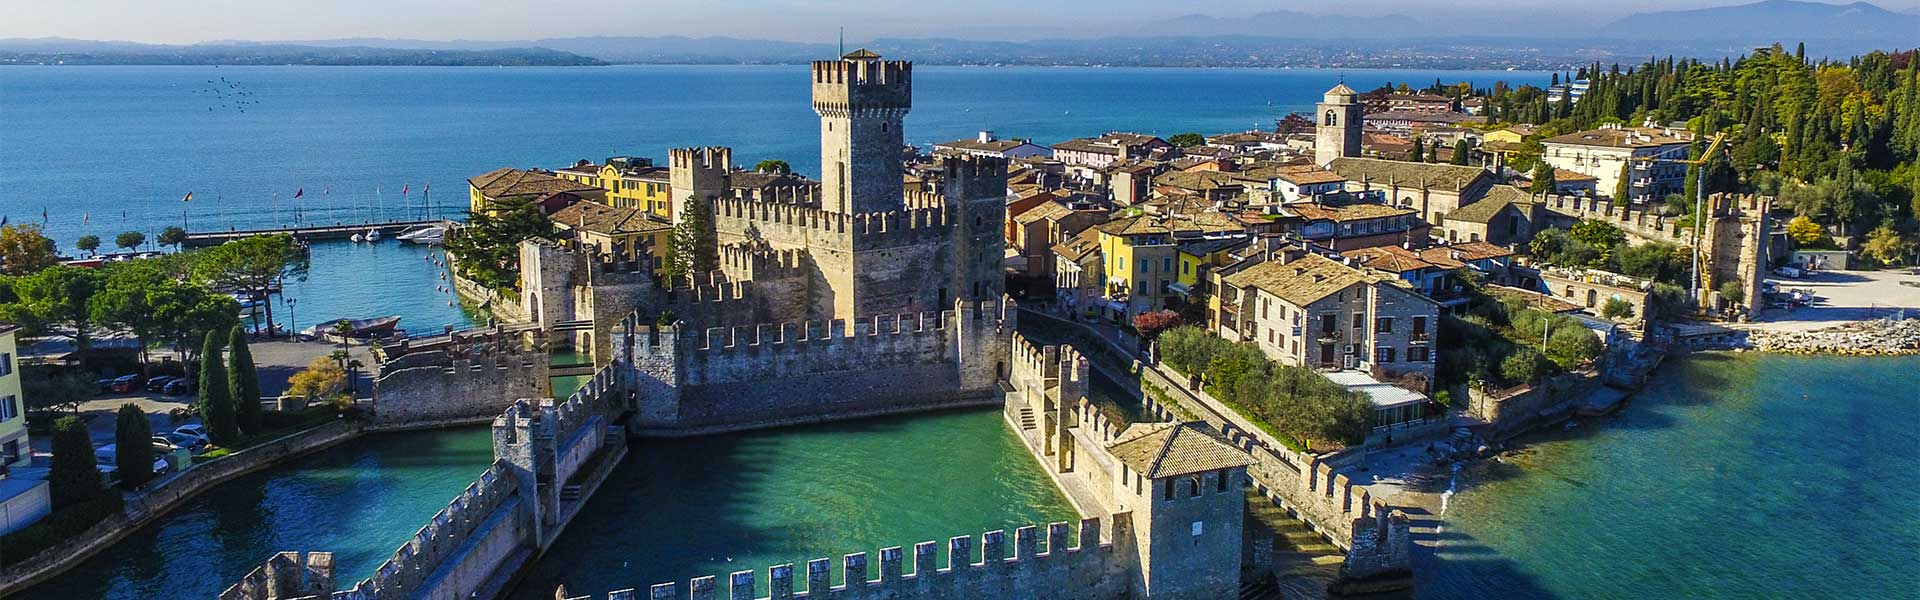 The Scaliger castle of Sirmione